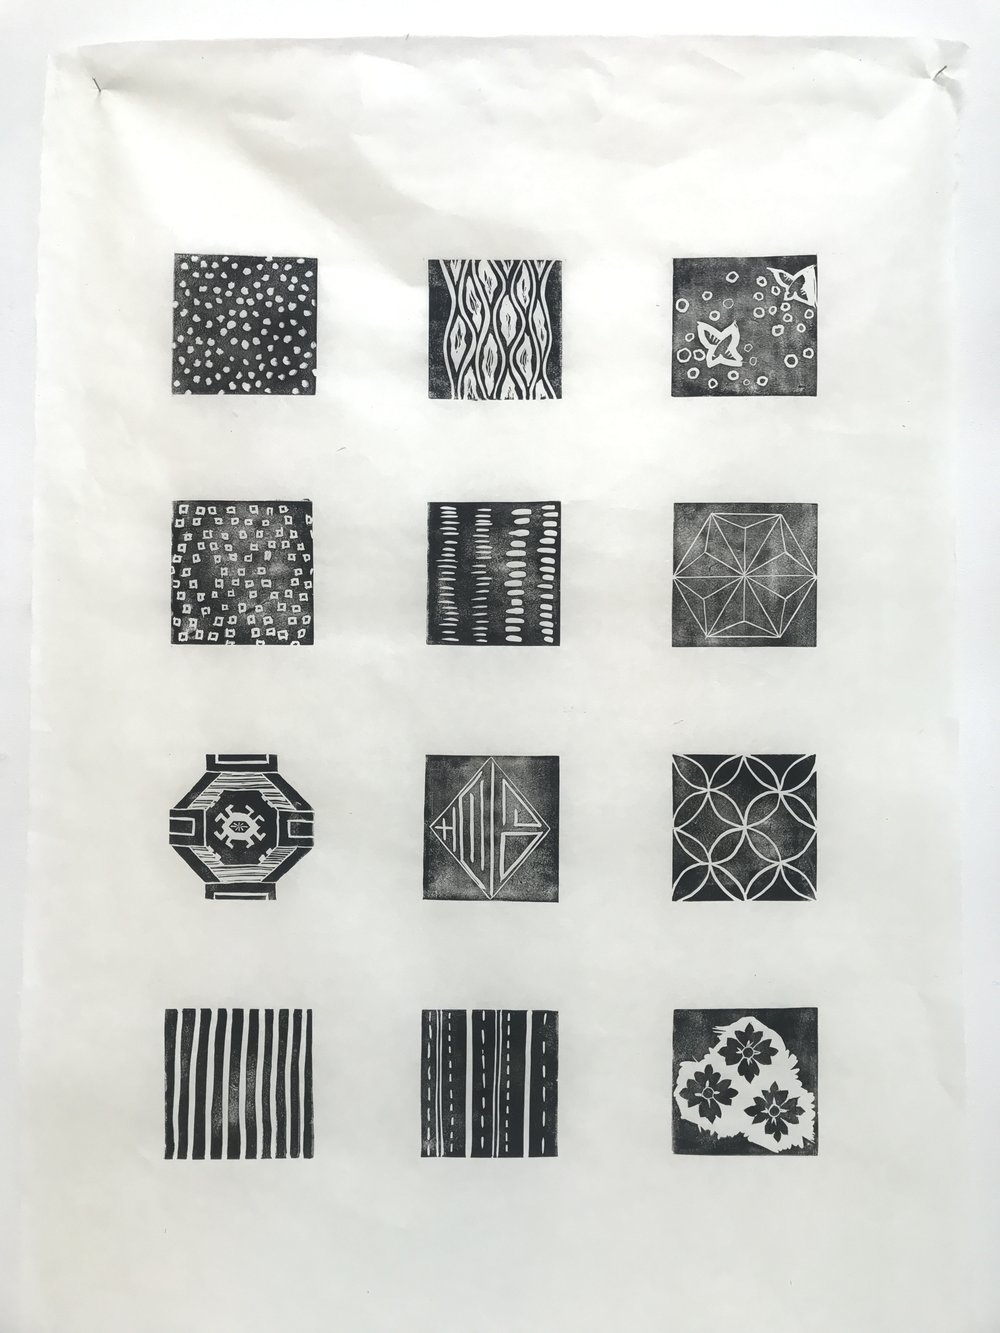 The original pattern elements are hand stamped on kinwashi paper